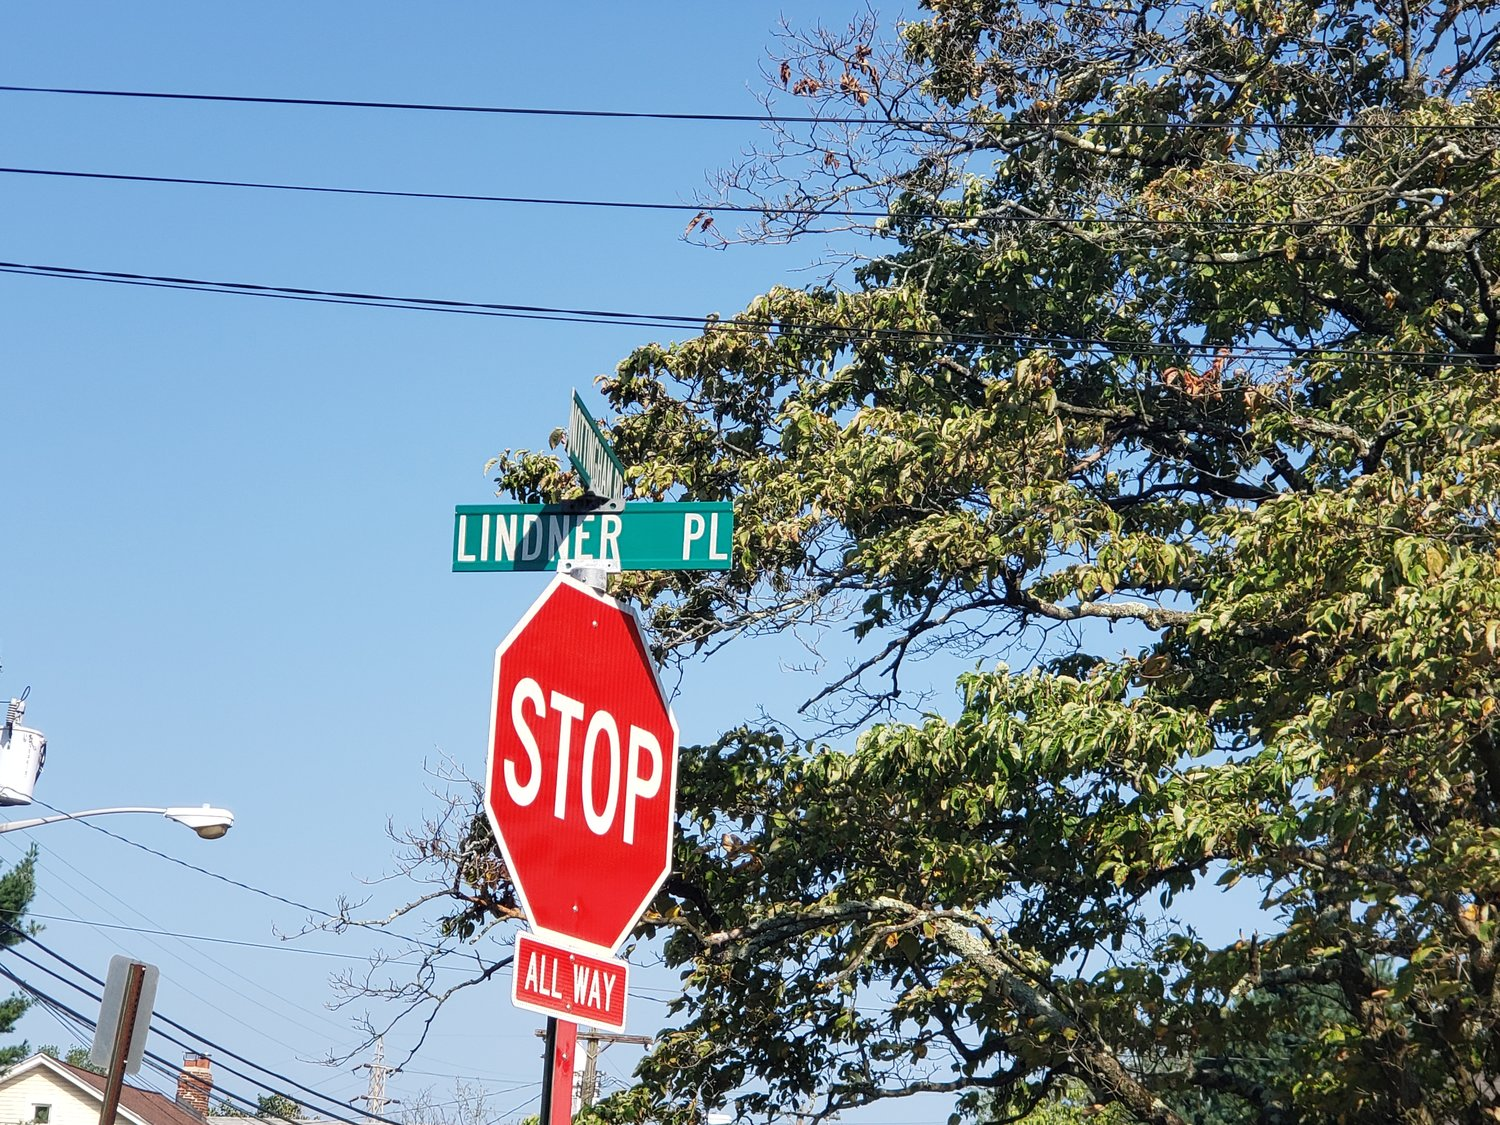 Residents started a petition in July to rename Malverne's Linder Place to Cherry Lane.